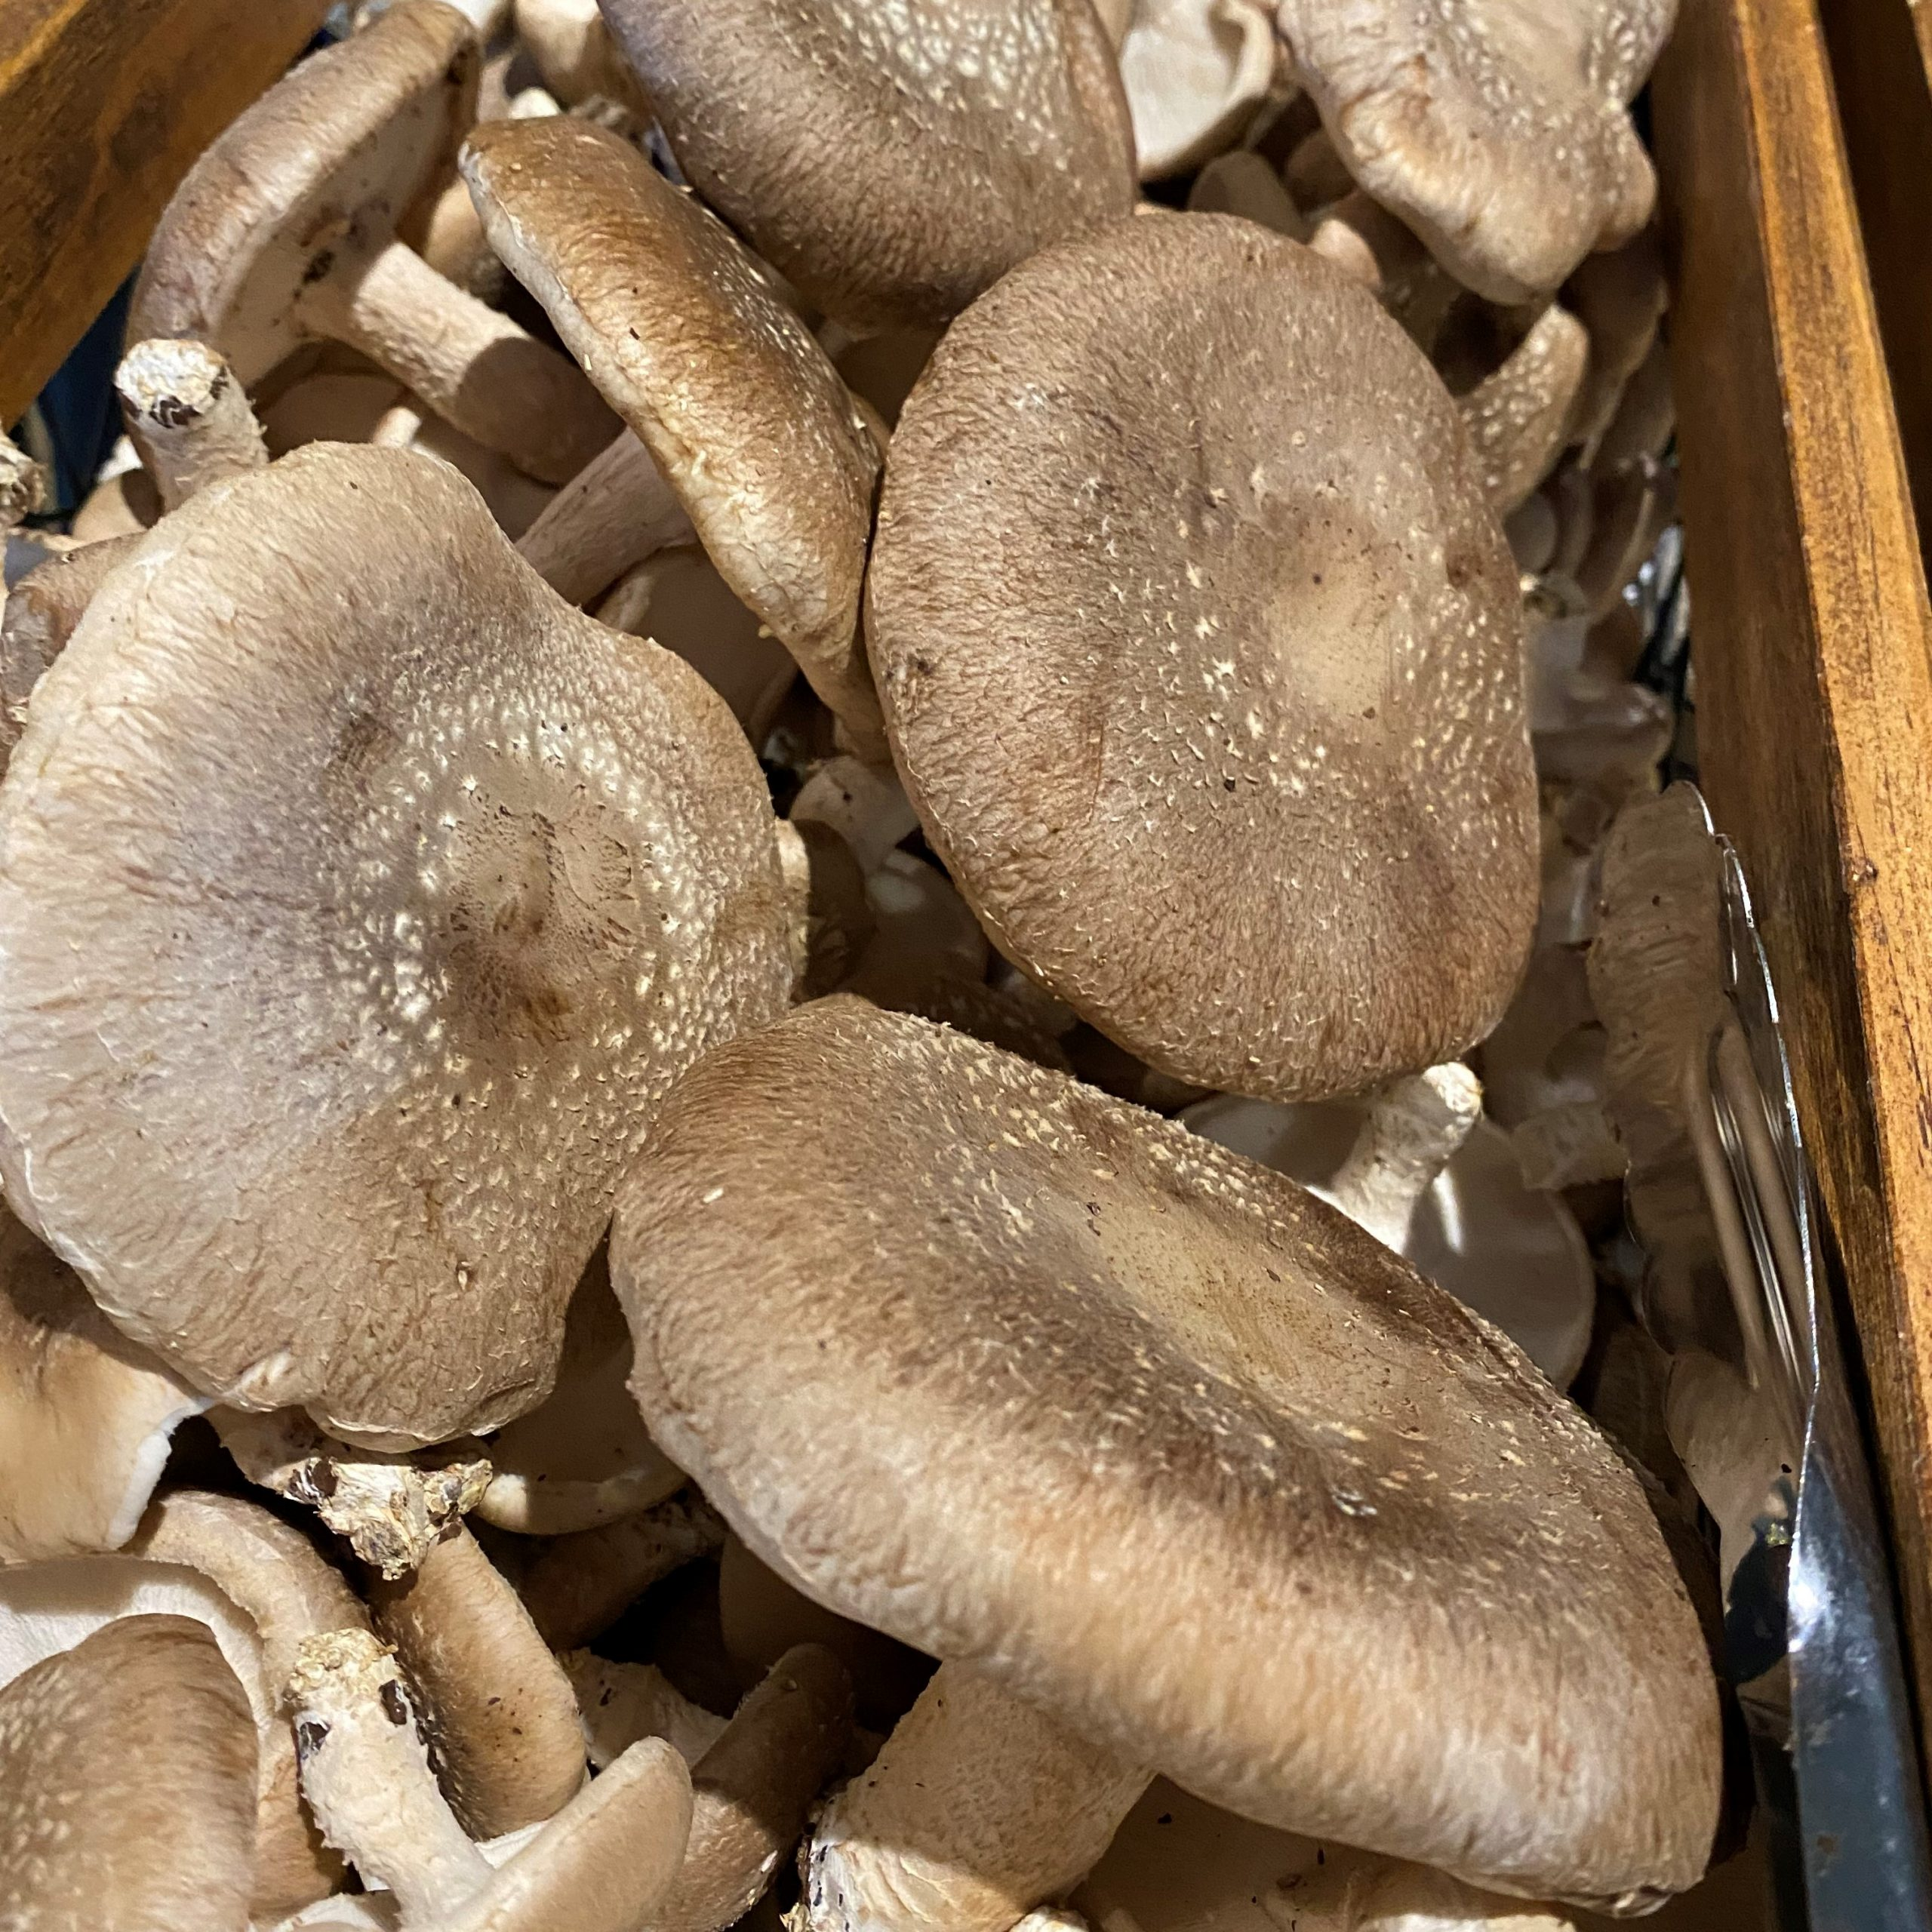 Meals from the Market: Magical Mushrooms